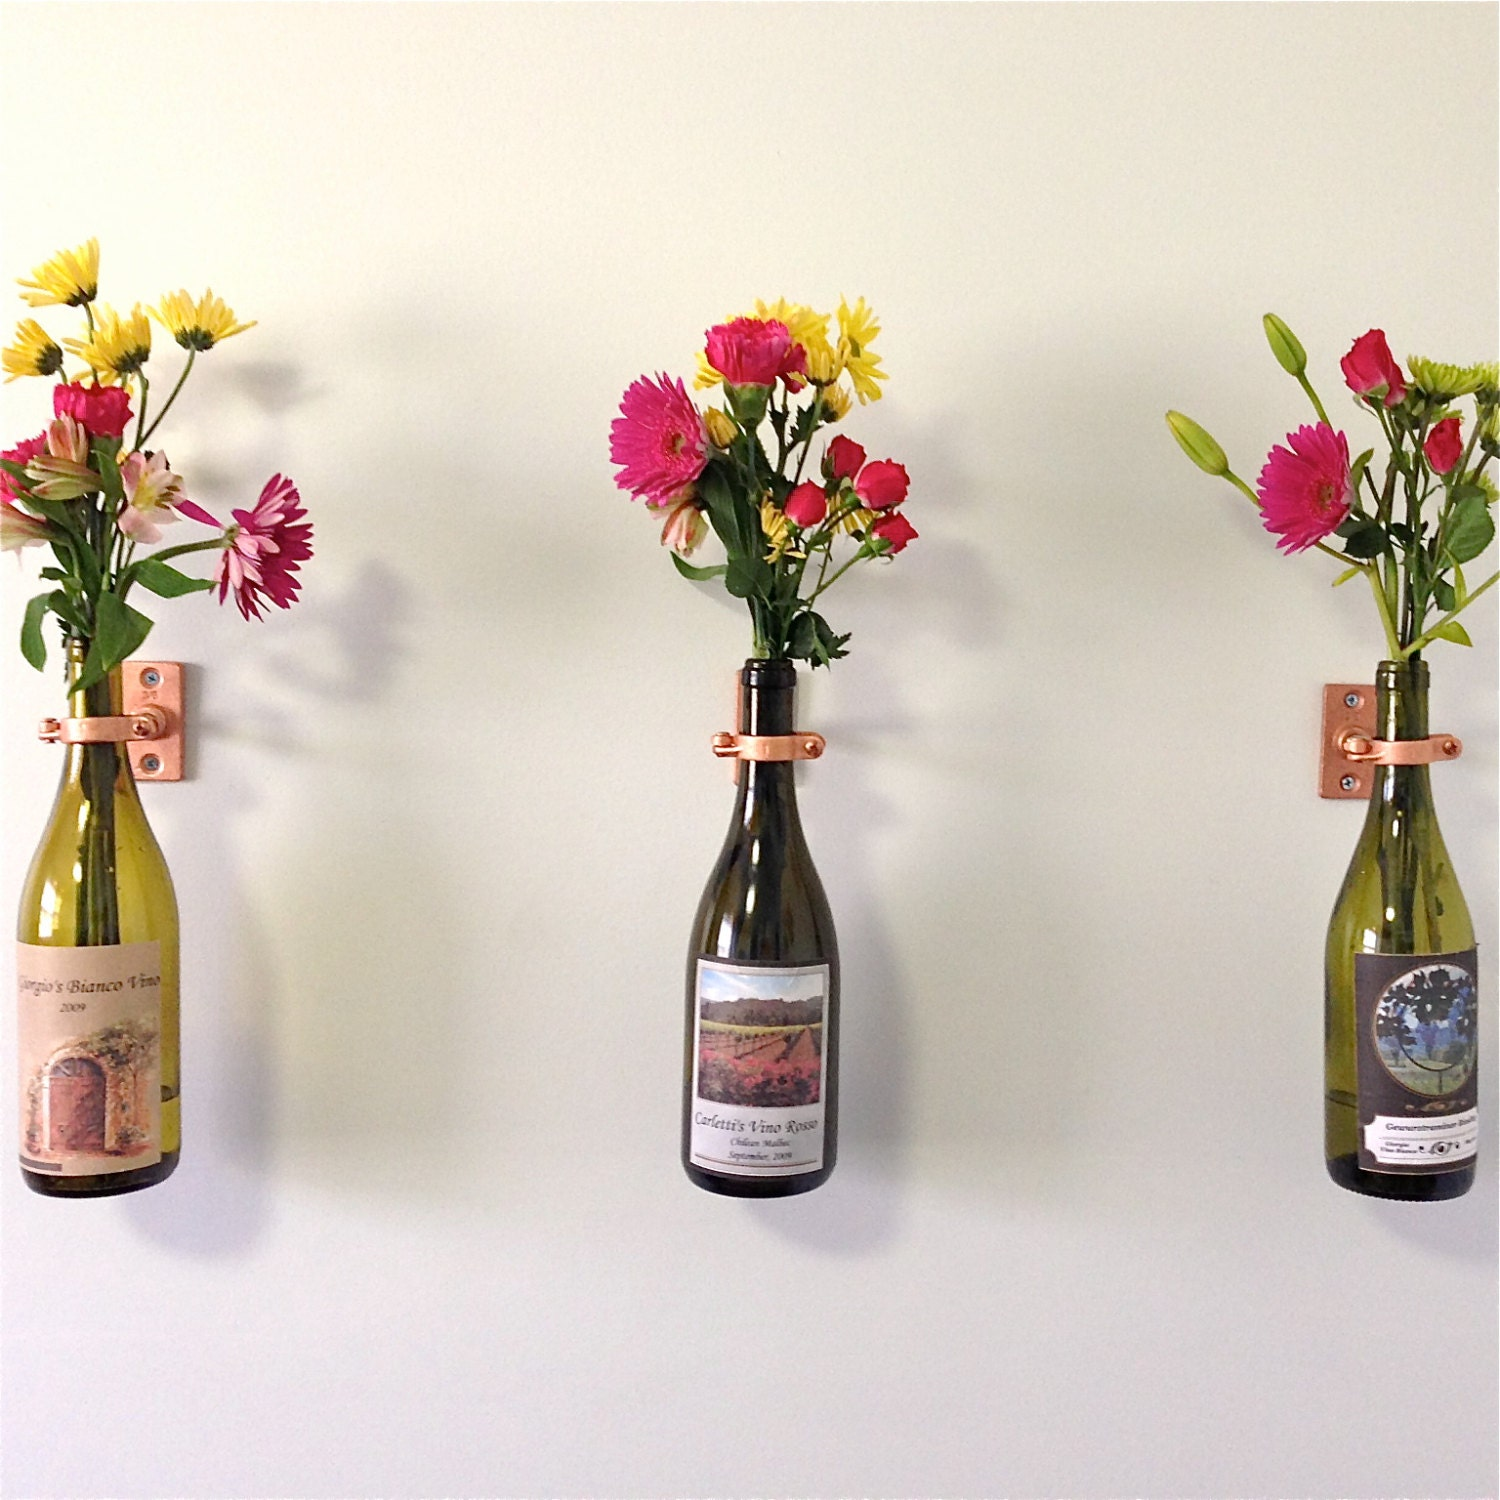 Hardware only 6 wine bottle wall flower vase kits silver - Great decorative flower vase designs ...